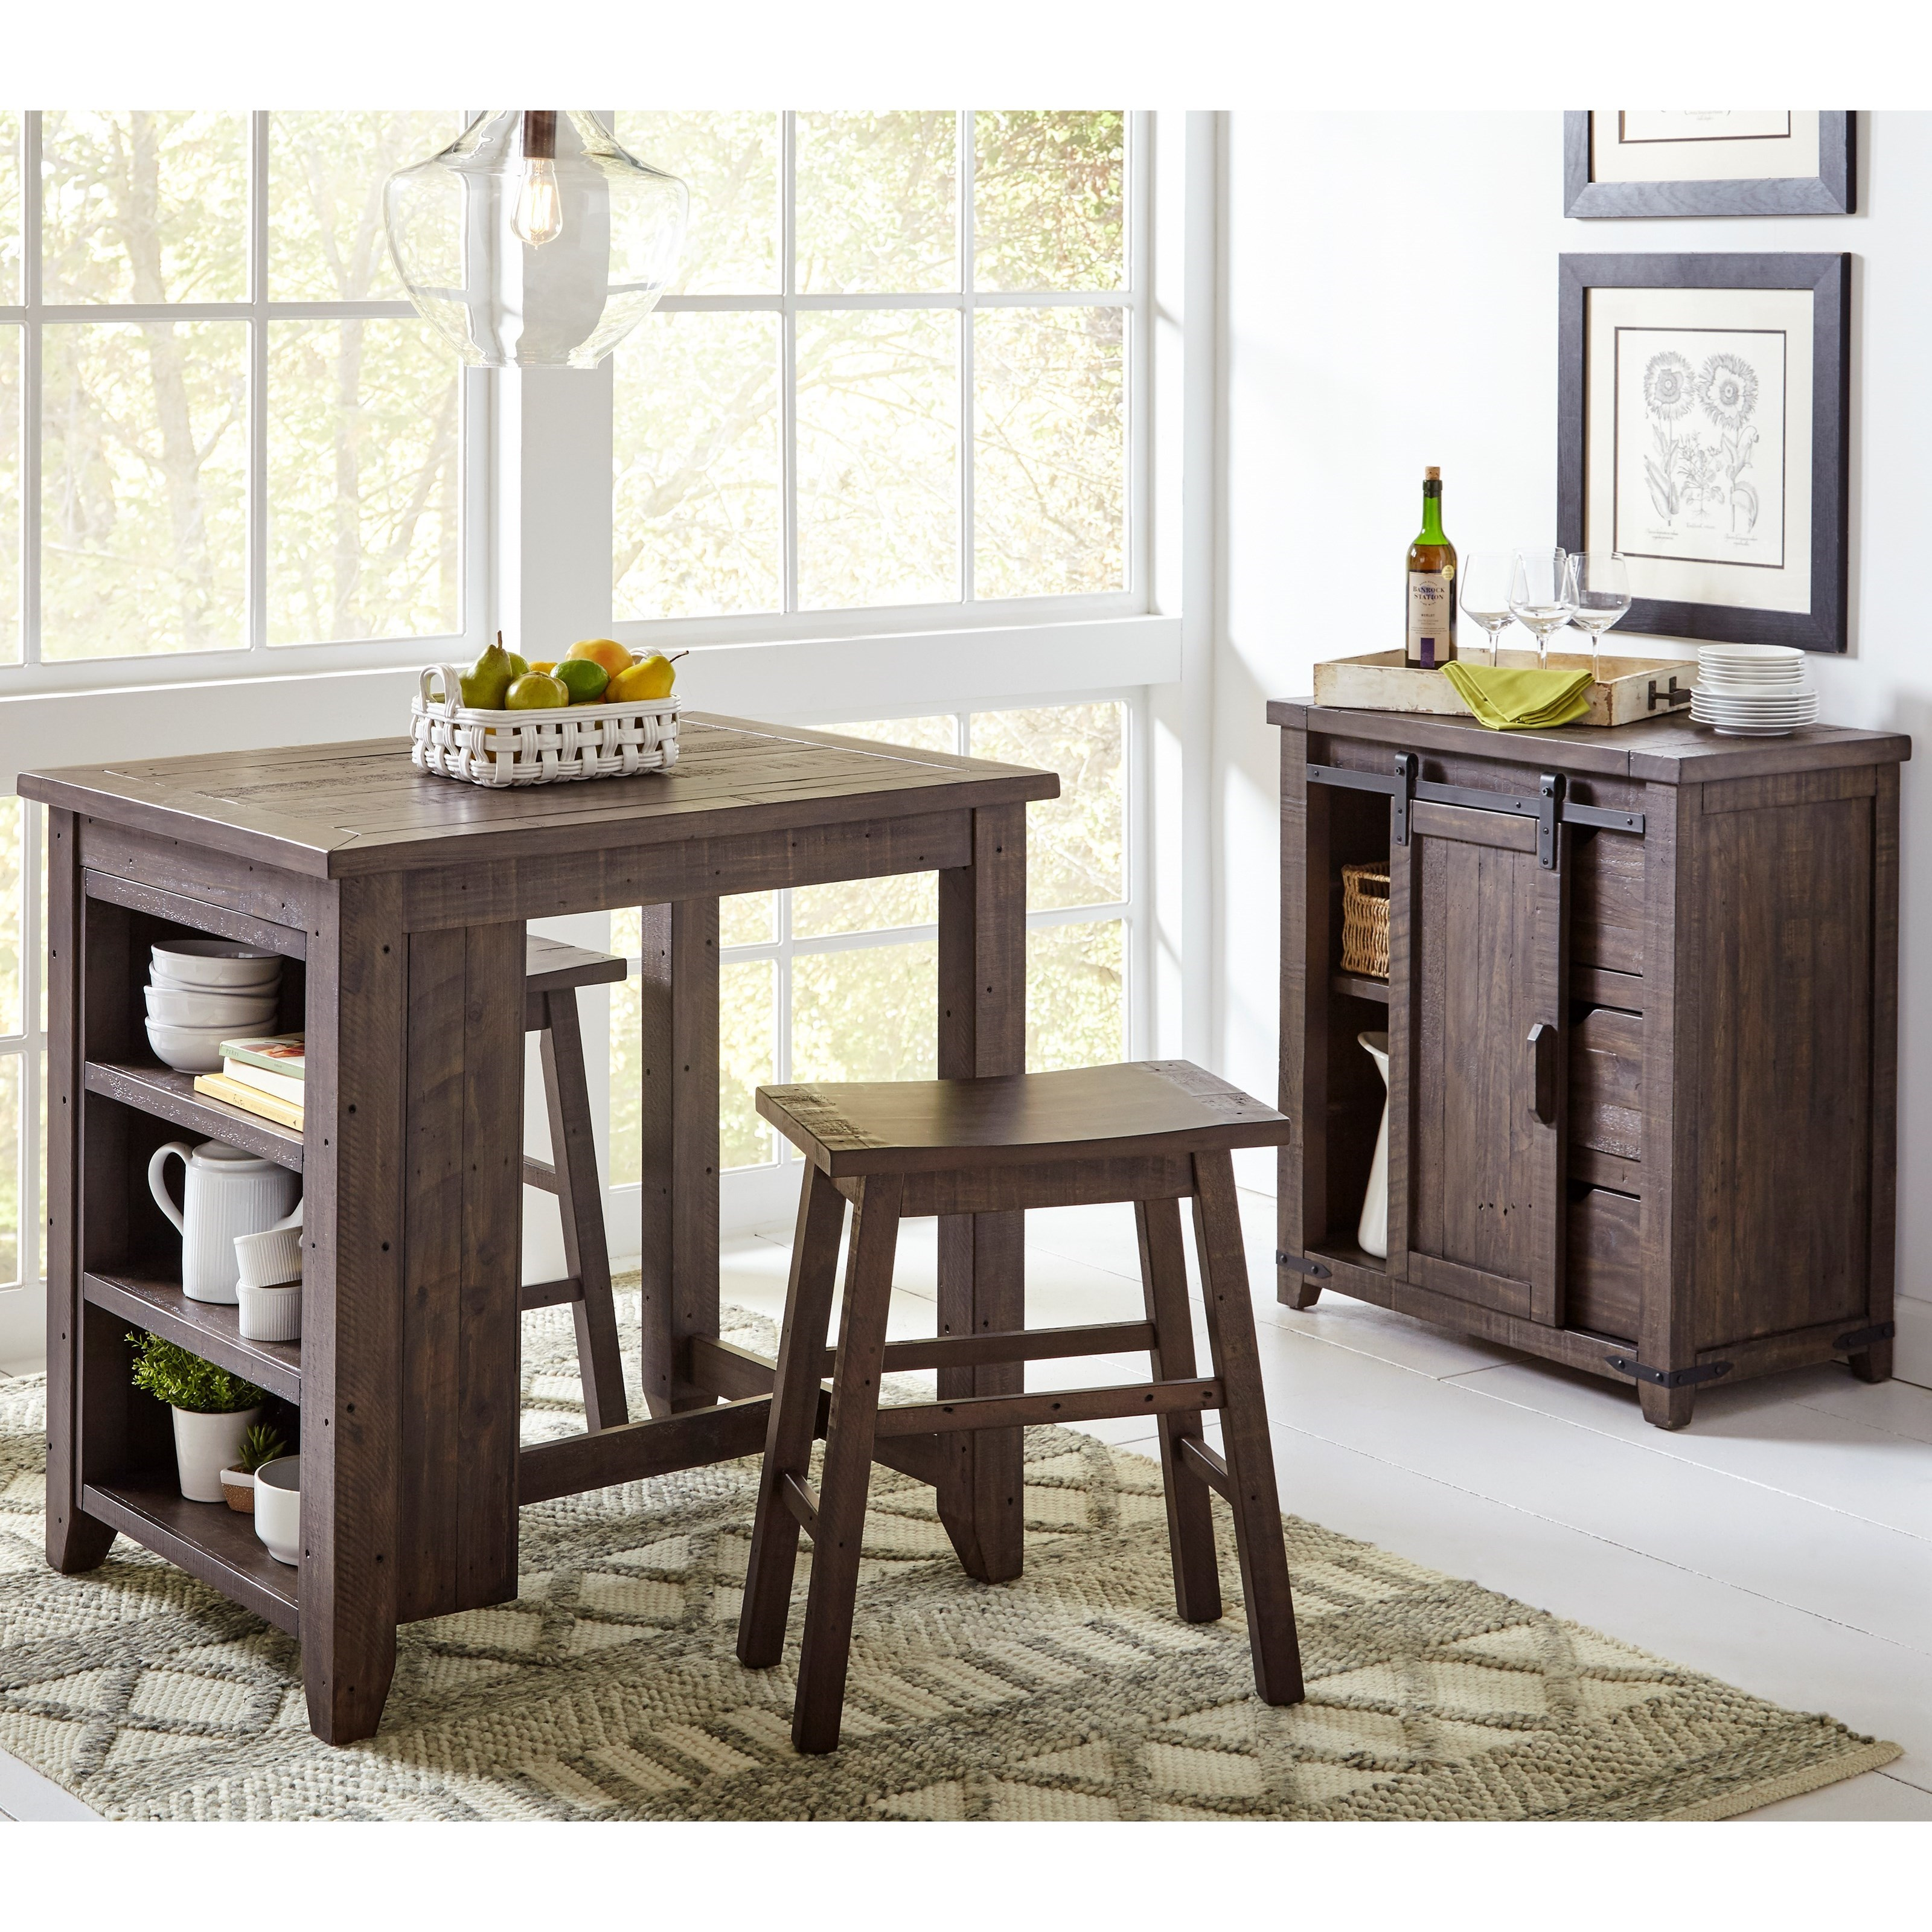 Madison County 3 Piece Counter Height Table Set by Jofran at Stoney Creek Furniture